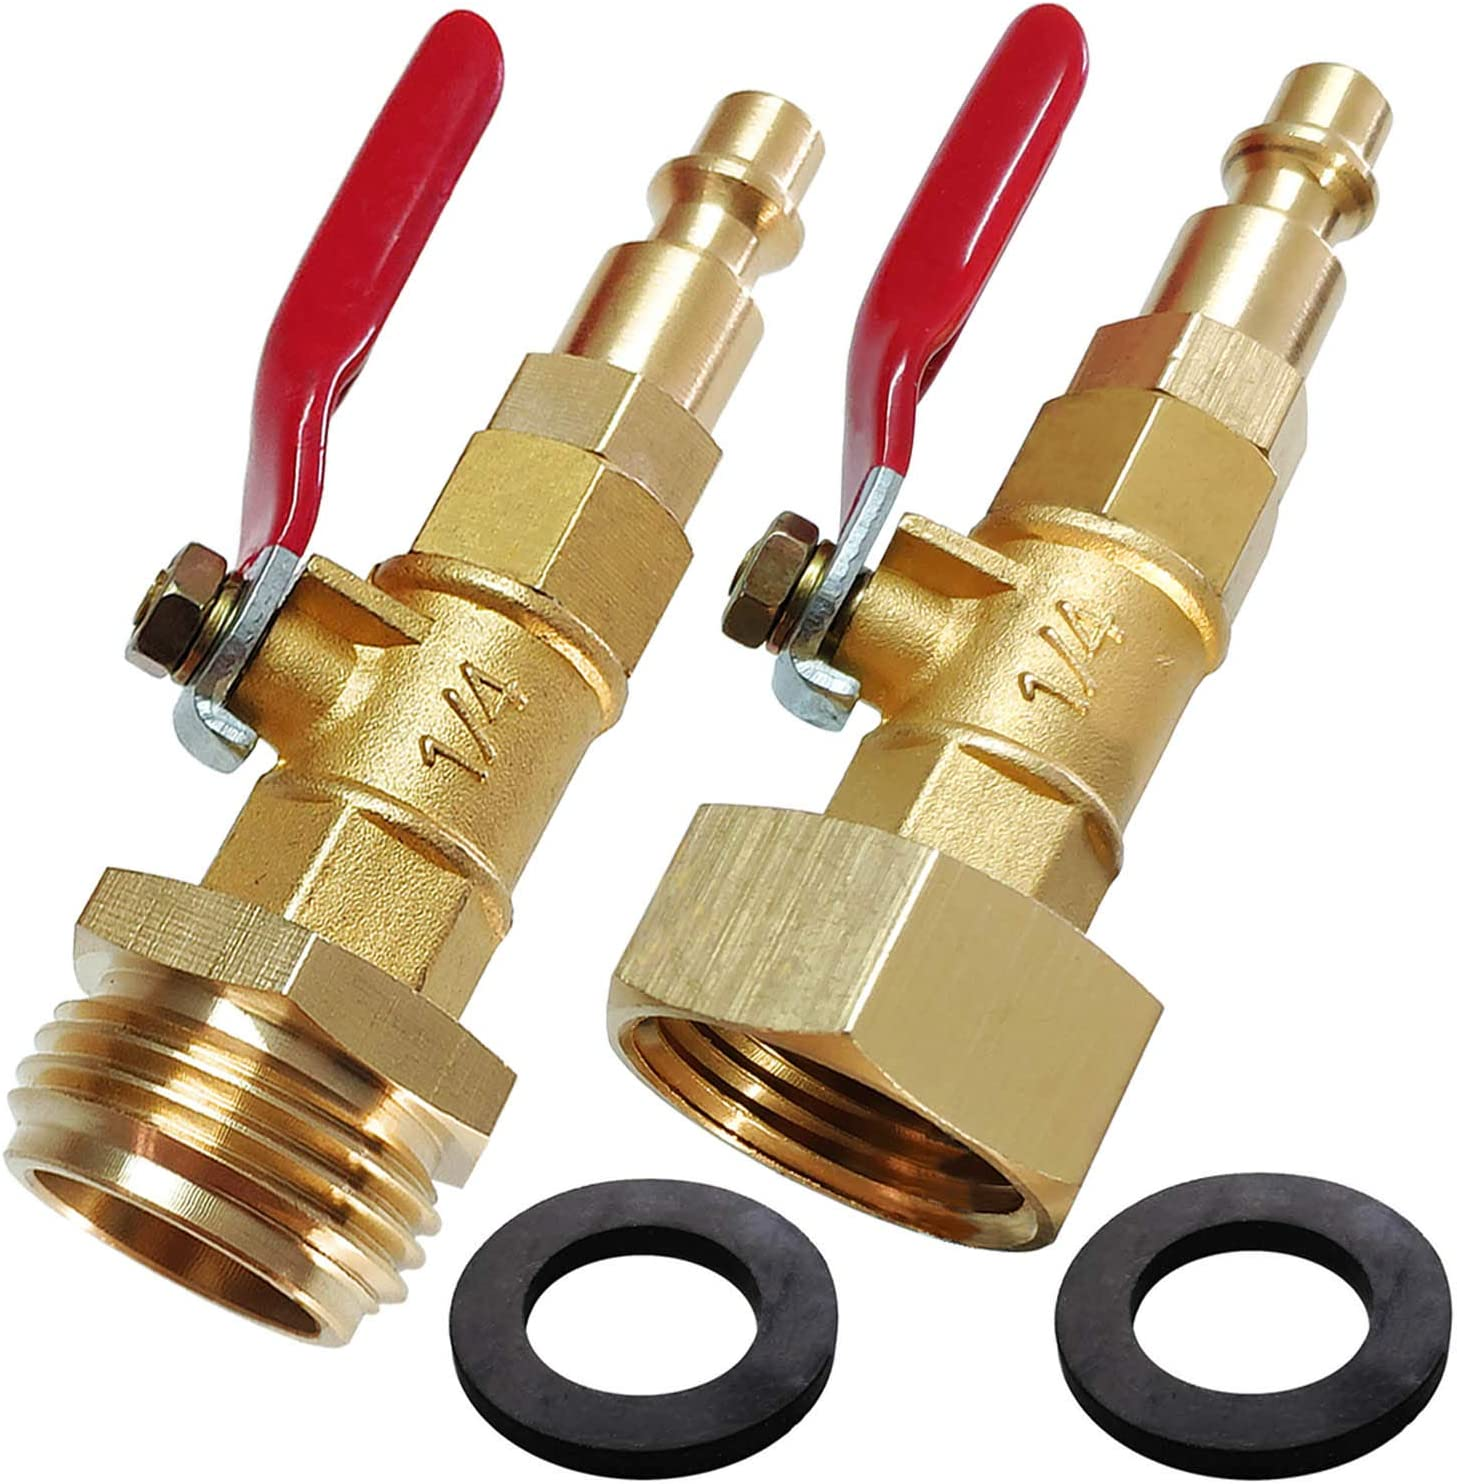 "Lomodo 2 Pieces Blow Out Adapter Winterizing Tool with 1/4"" Quick Connect Plug and 3/4"" Garden Hose Threading, Brass Quick Fitting with Ball Valve for Blowing Out Water to Winterize Water Lines"